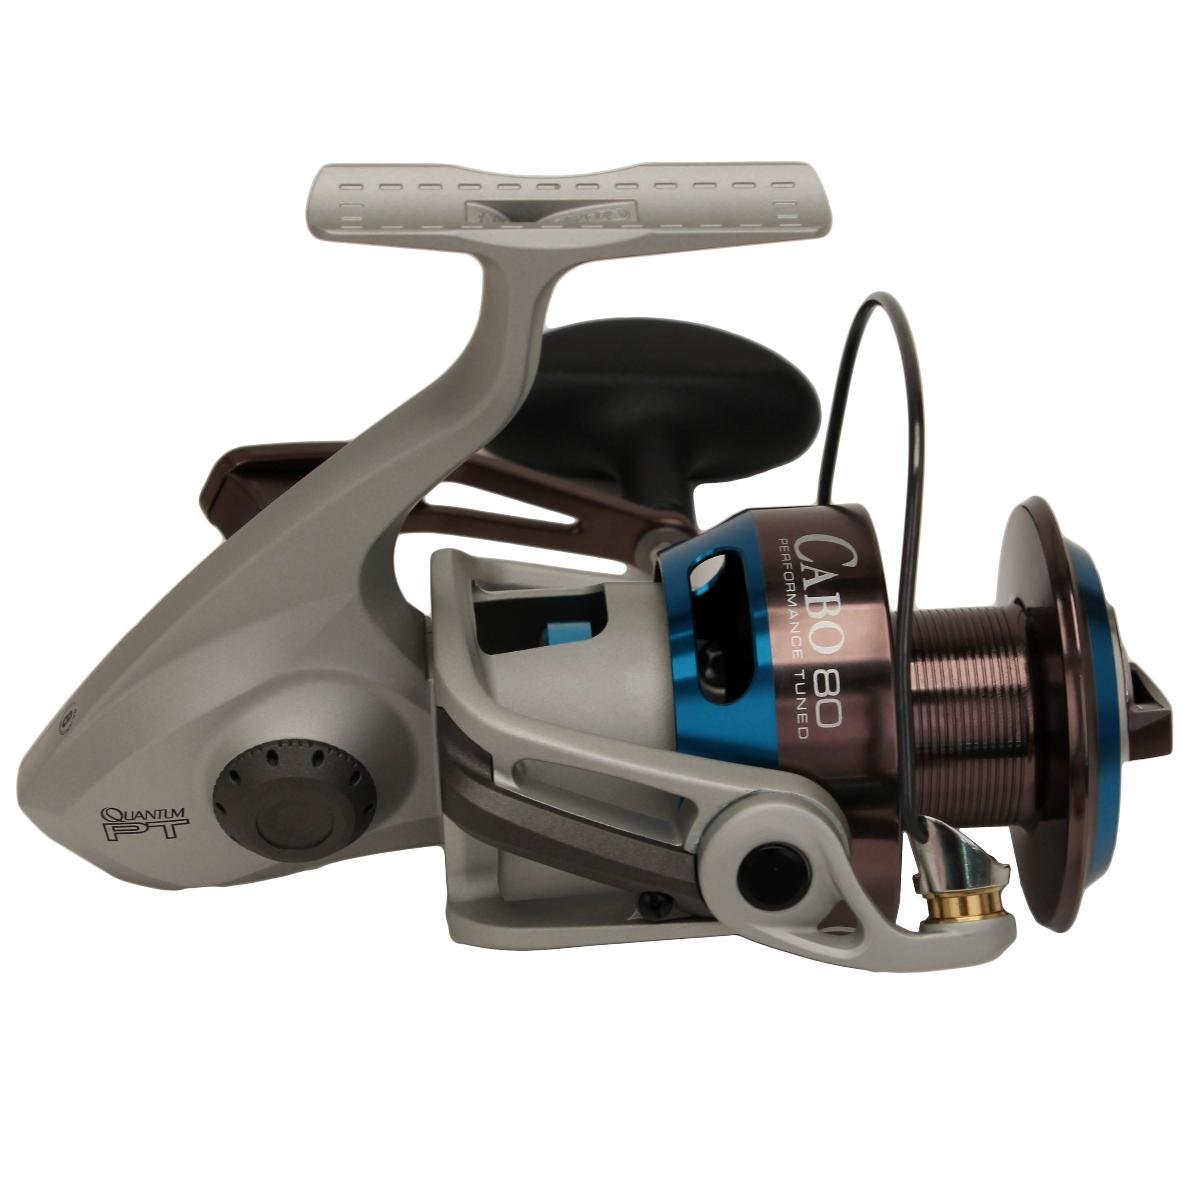 10 Best Saltwater Spinning Reels For The Money – [Top Rated